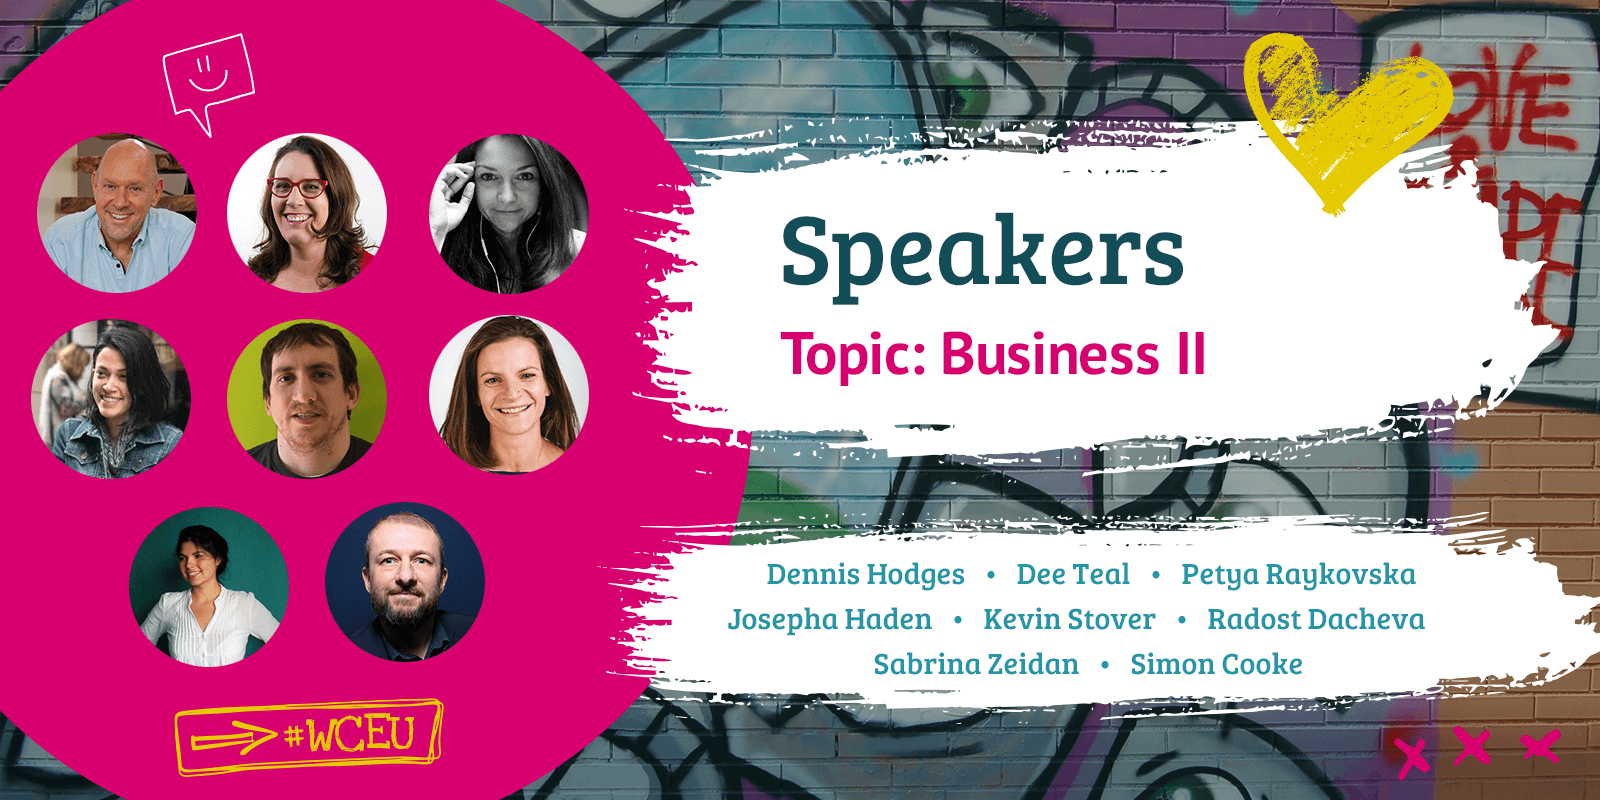 Confirmed Group of Speakers for Business II